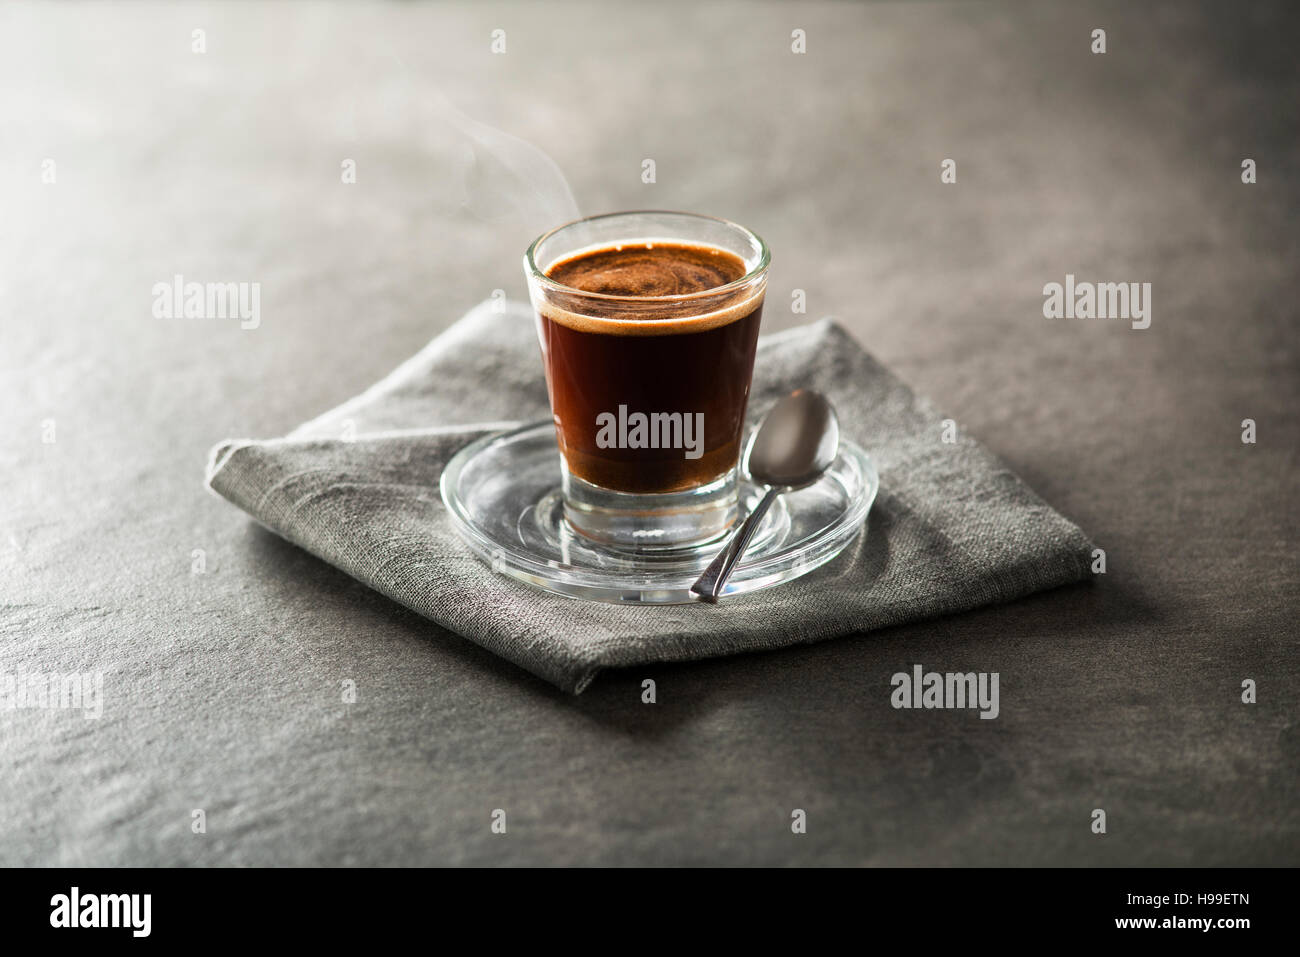 Cup of espresso coffee on dark background. - Stock Image